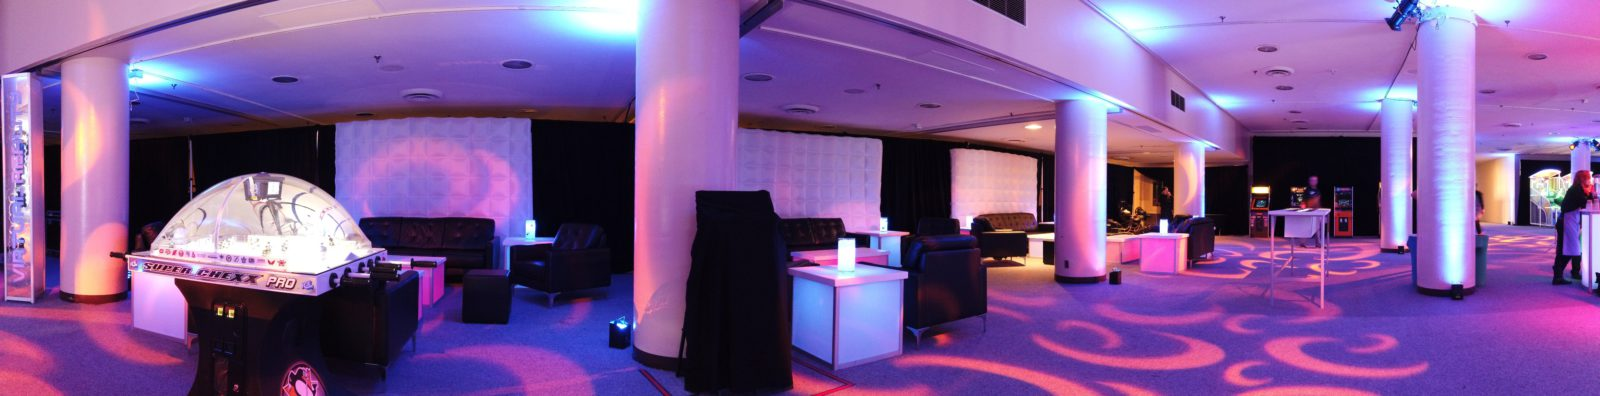 led gaming lounge services